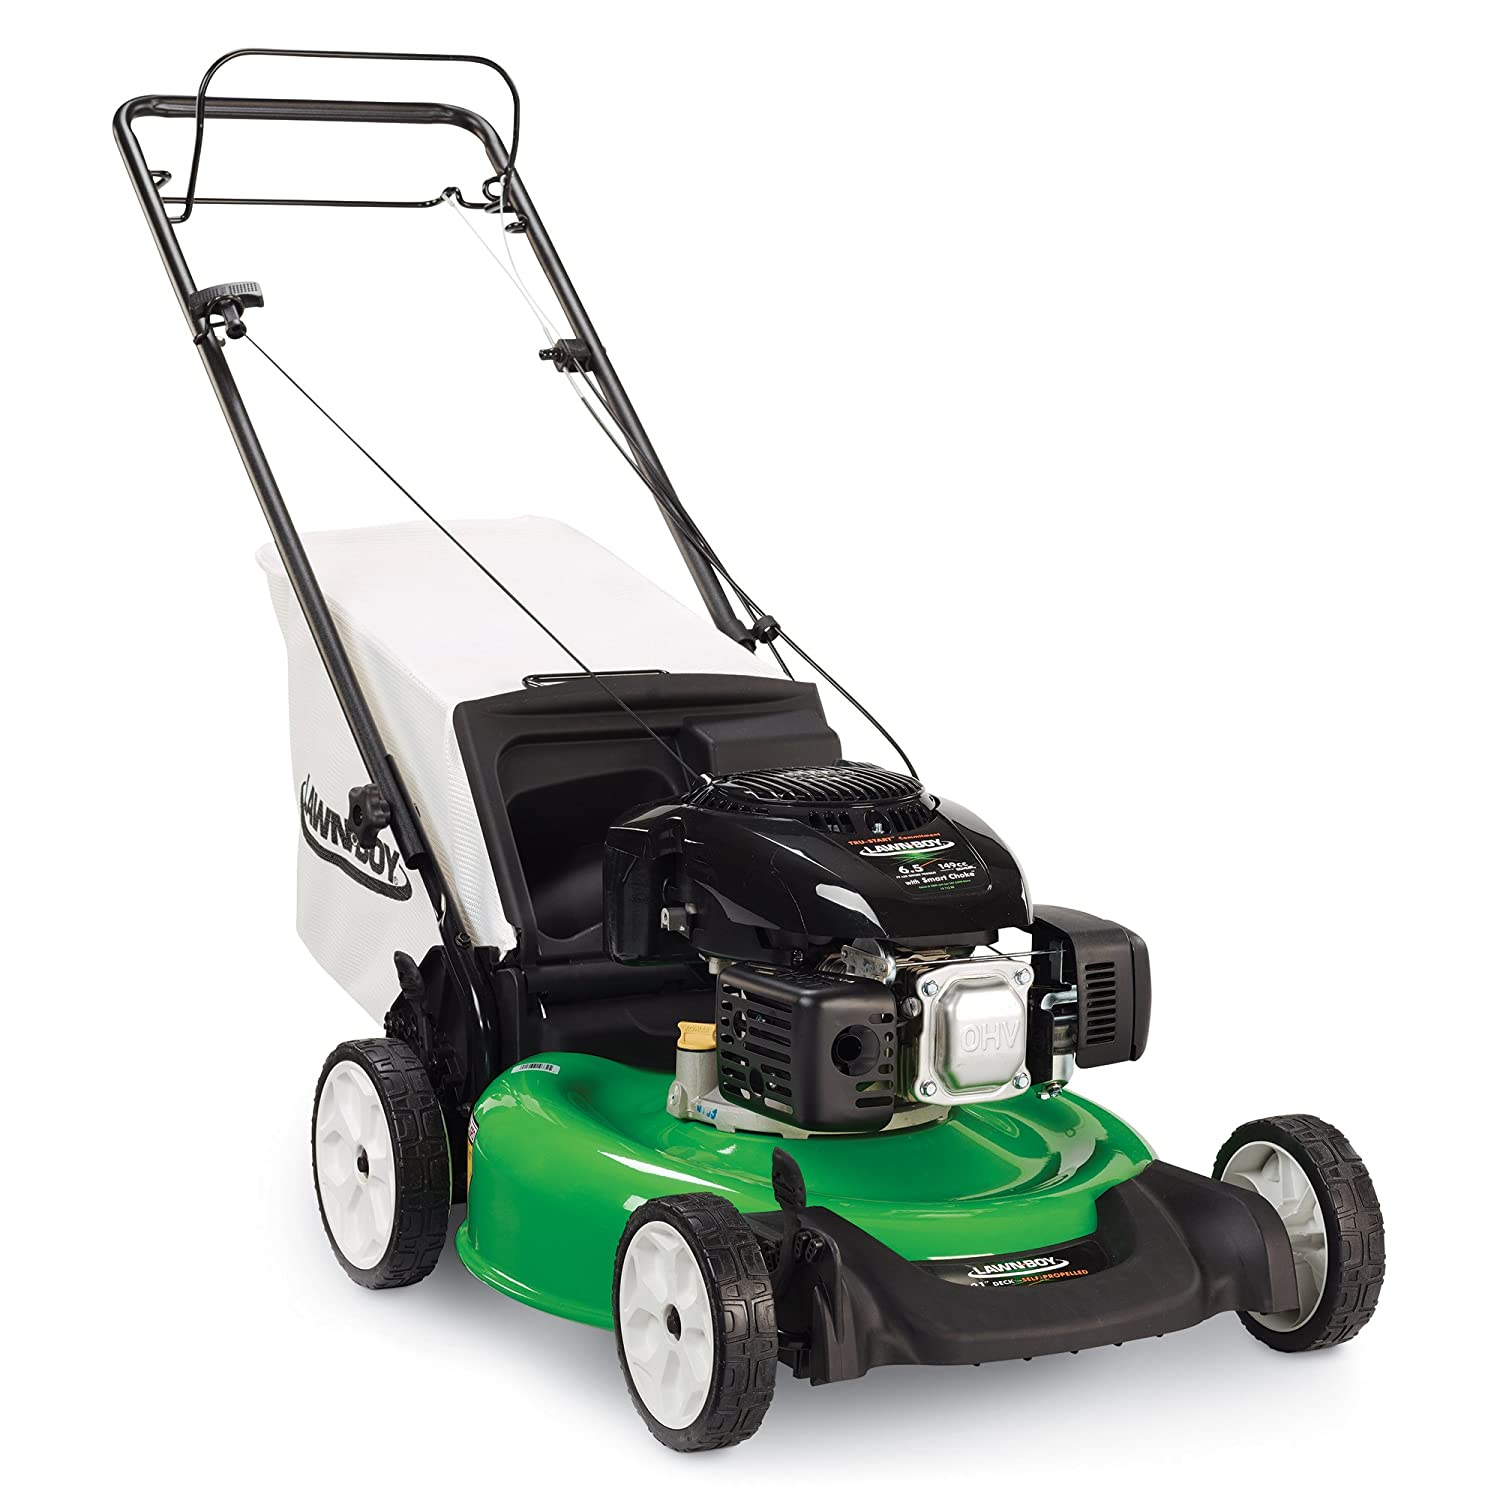 best self-propelled lawn mower under 300 - Lawn-Boy